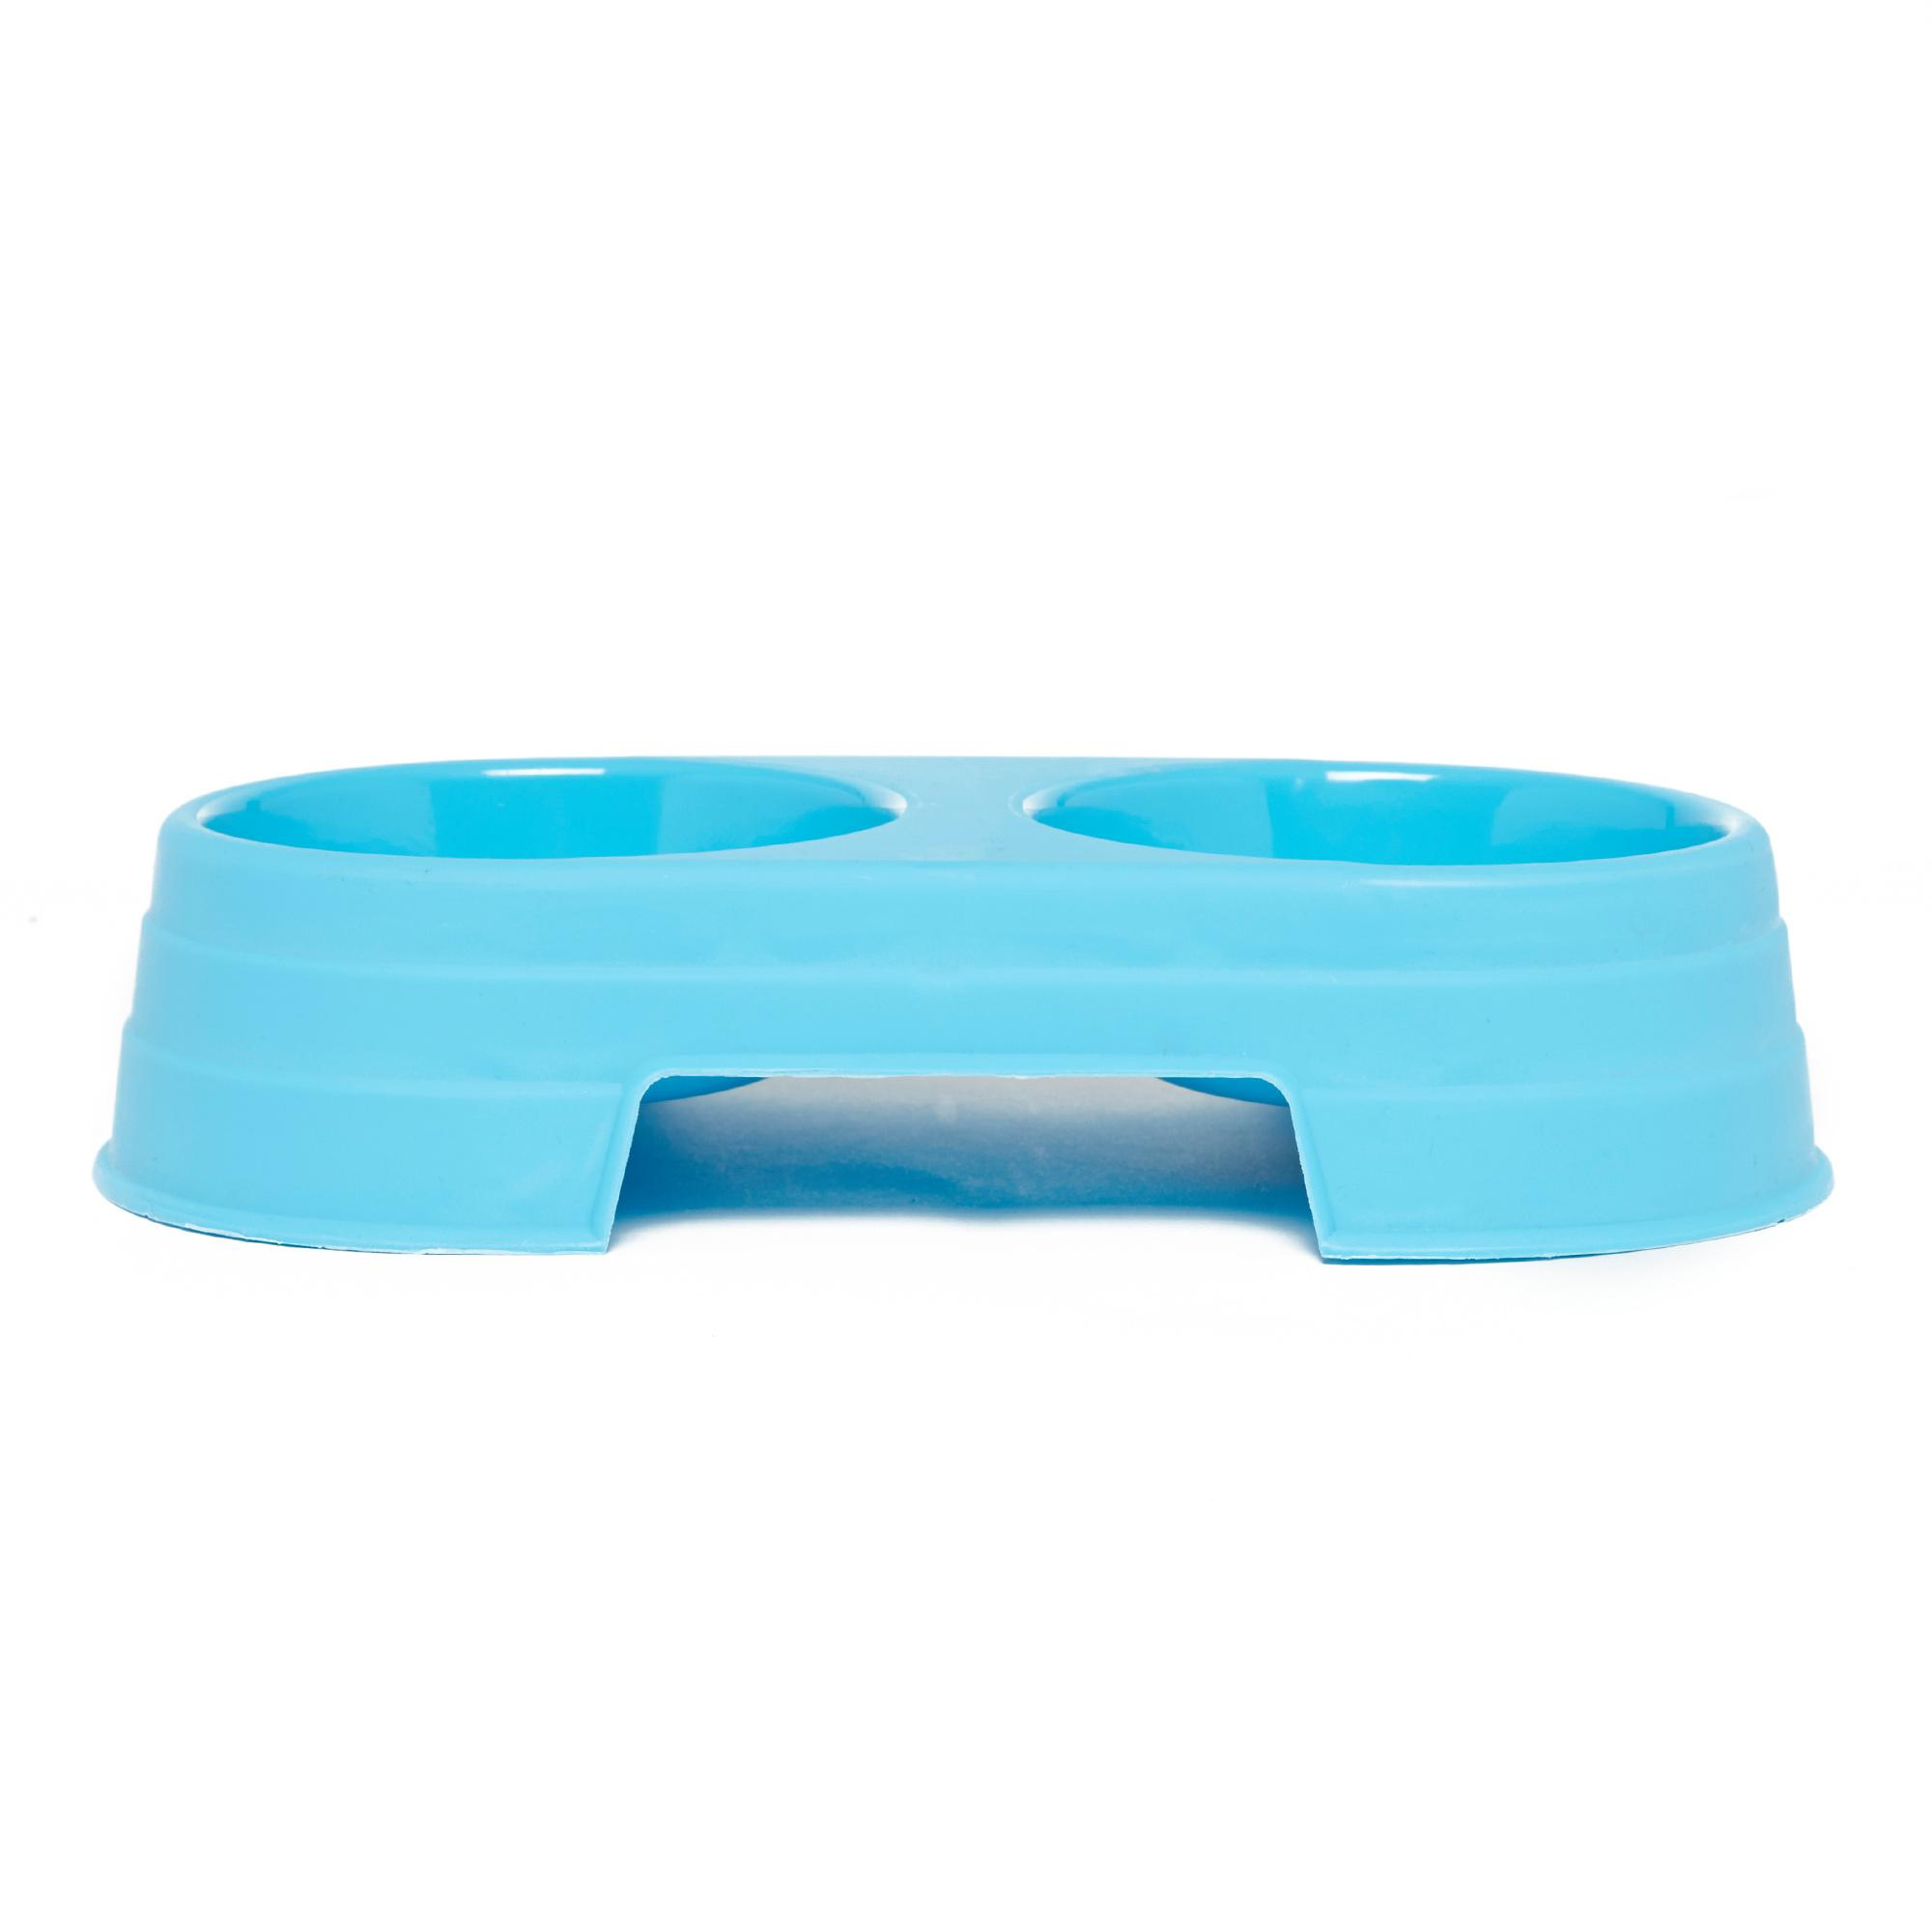 Image of Boyz Toys Double Food And Water Bowl, Blue